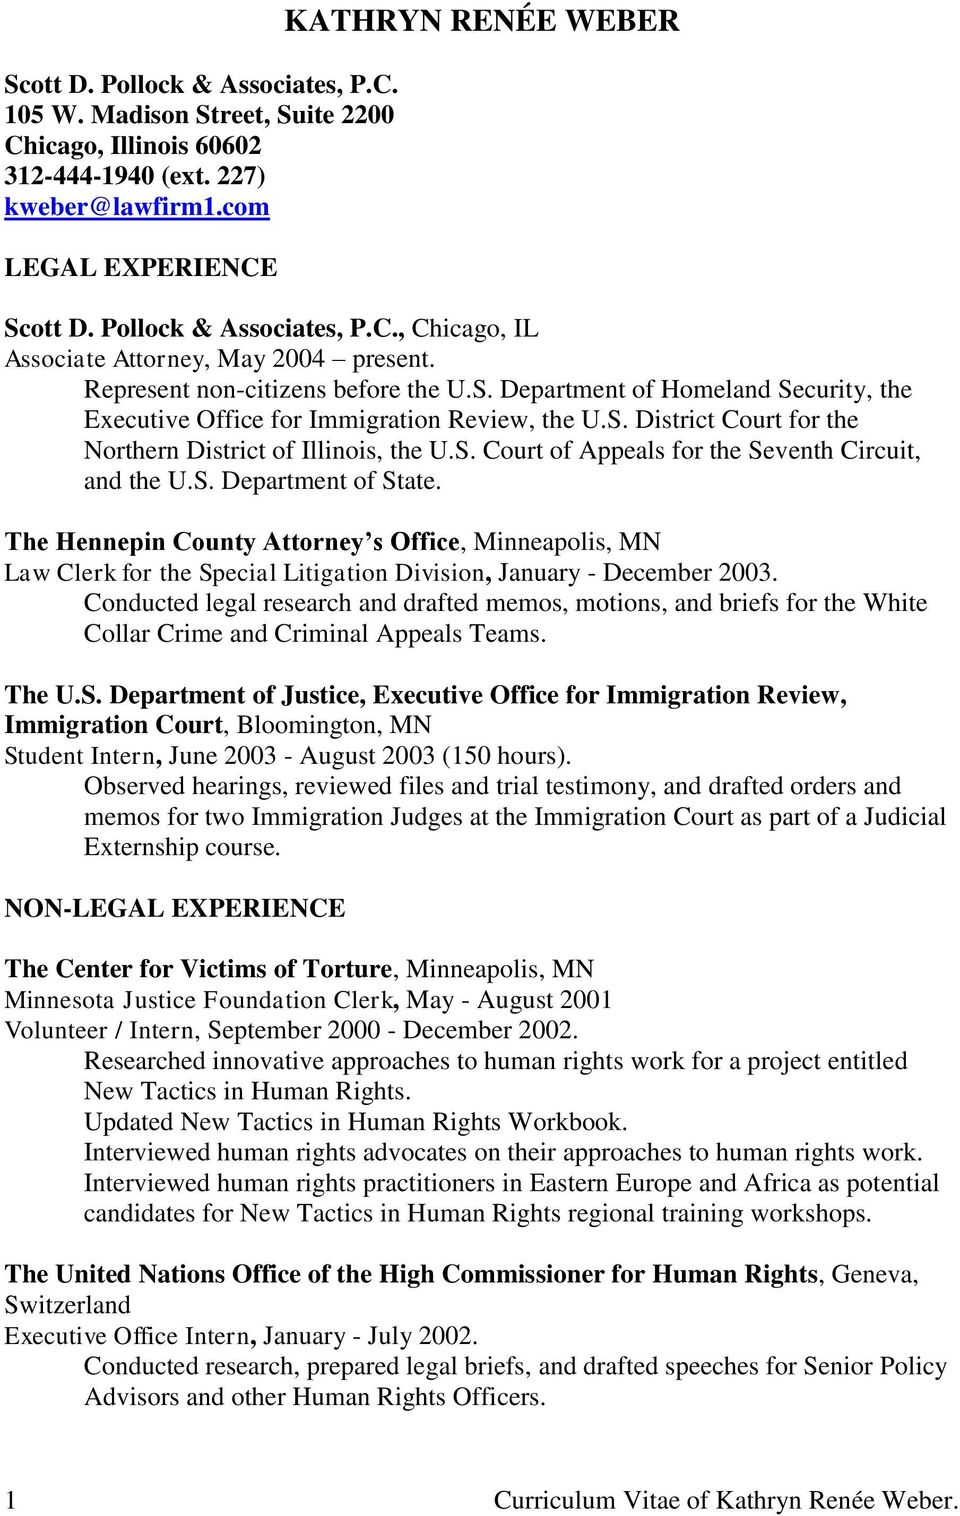 Department of Homeland Security, the Executive Office for Immigration Review, the U.S. District Court for the Northern District of Illinois, the U.S. Court of Appeals for the Seventh Circuit, and the U.